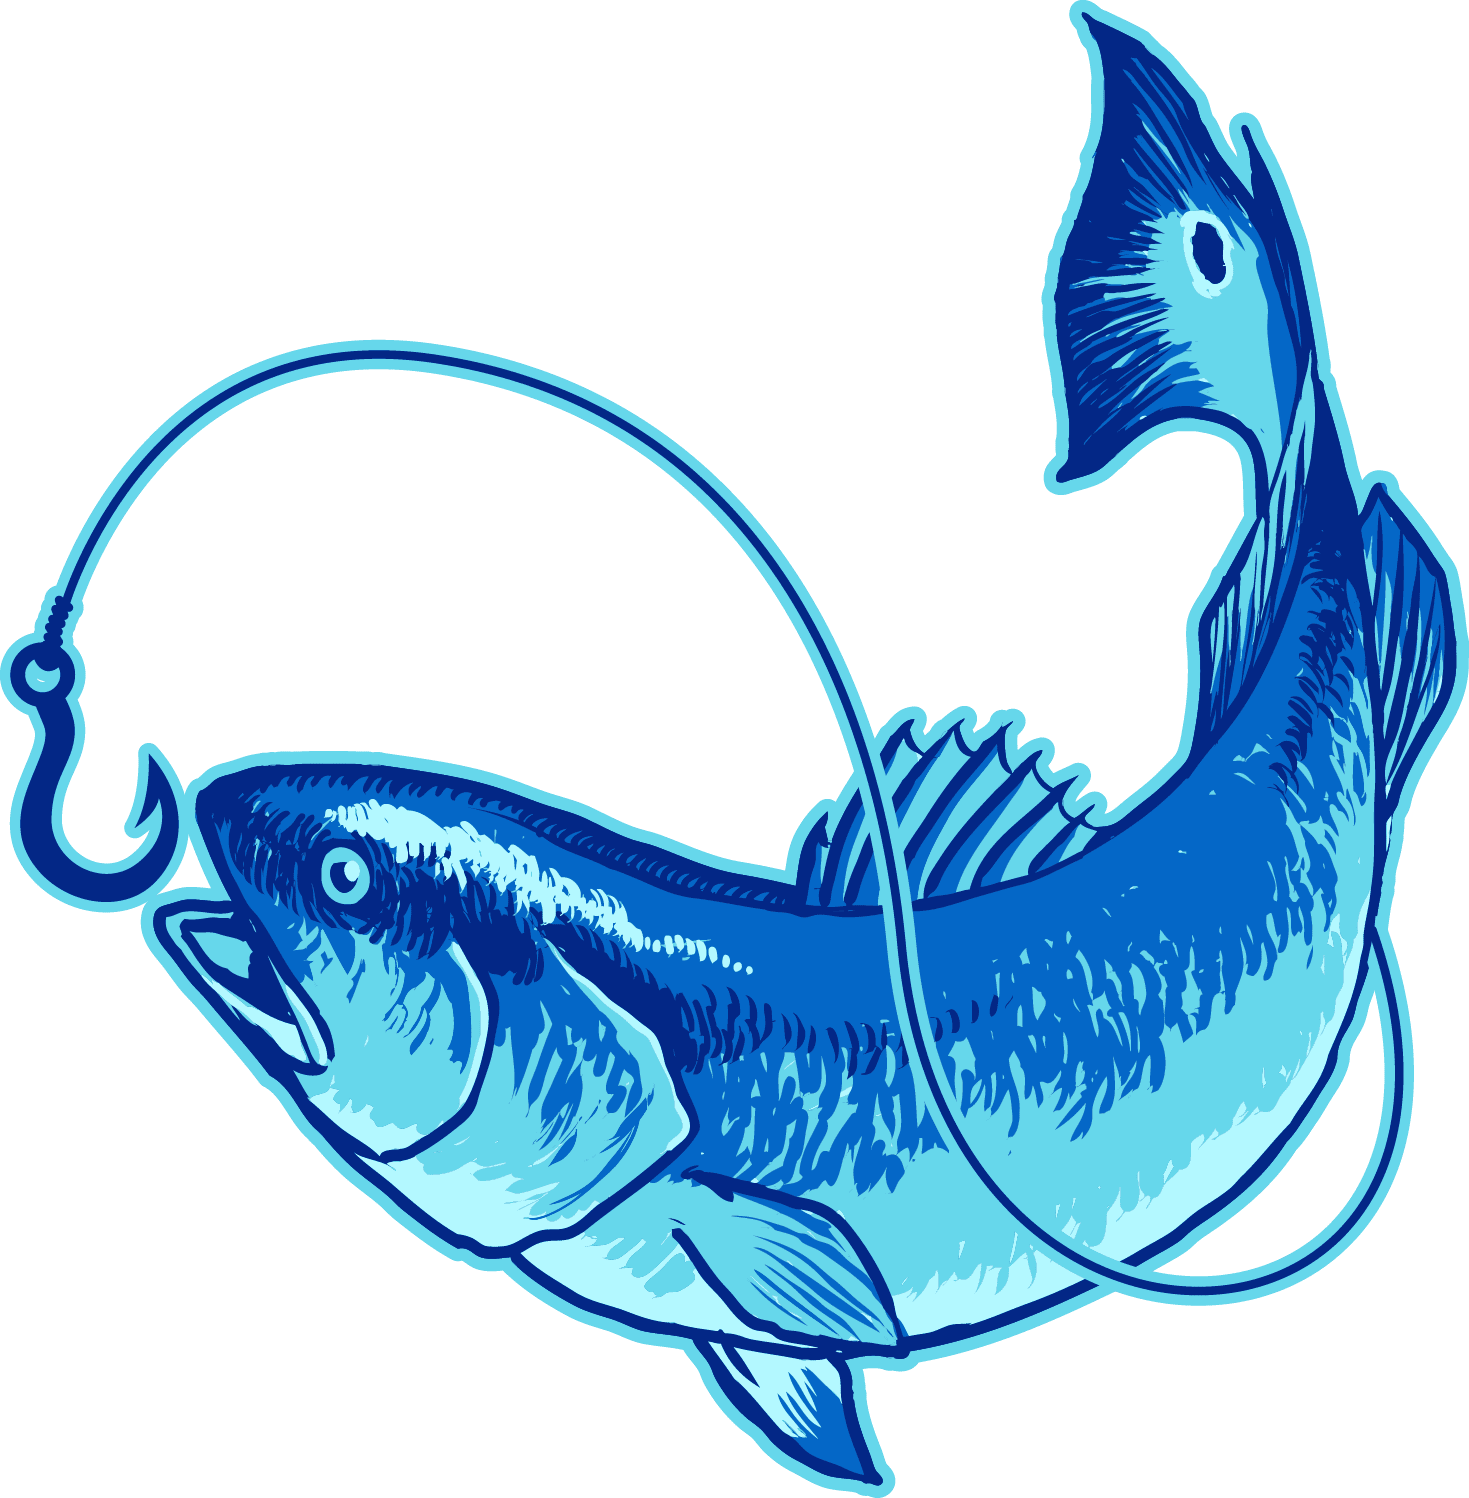 Fish Hooked On Tail Charters, LLC Red drum Clip art.